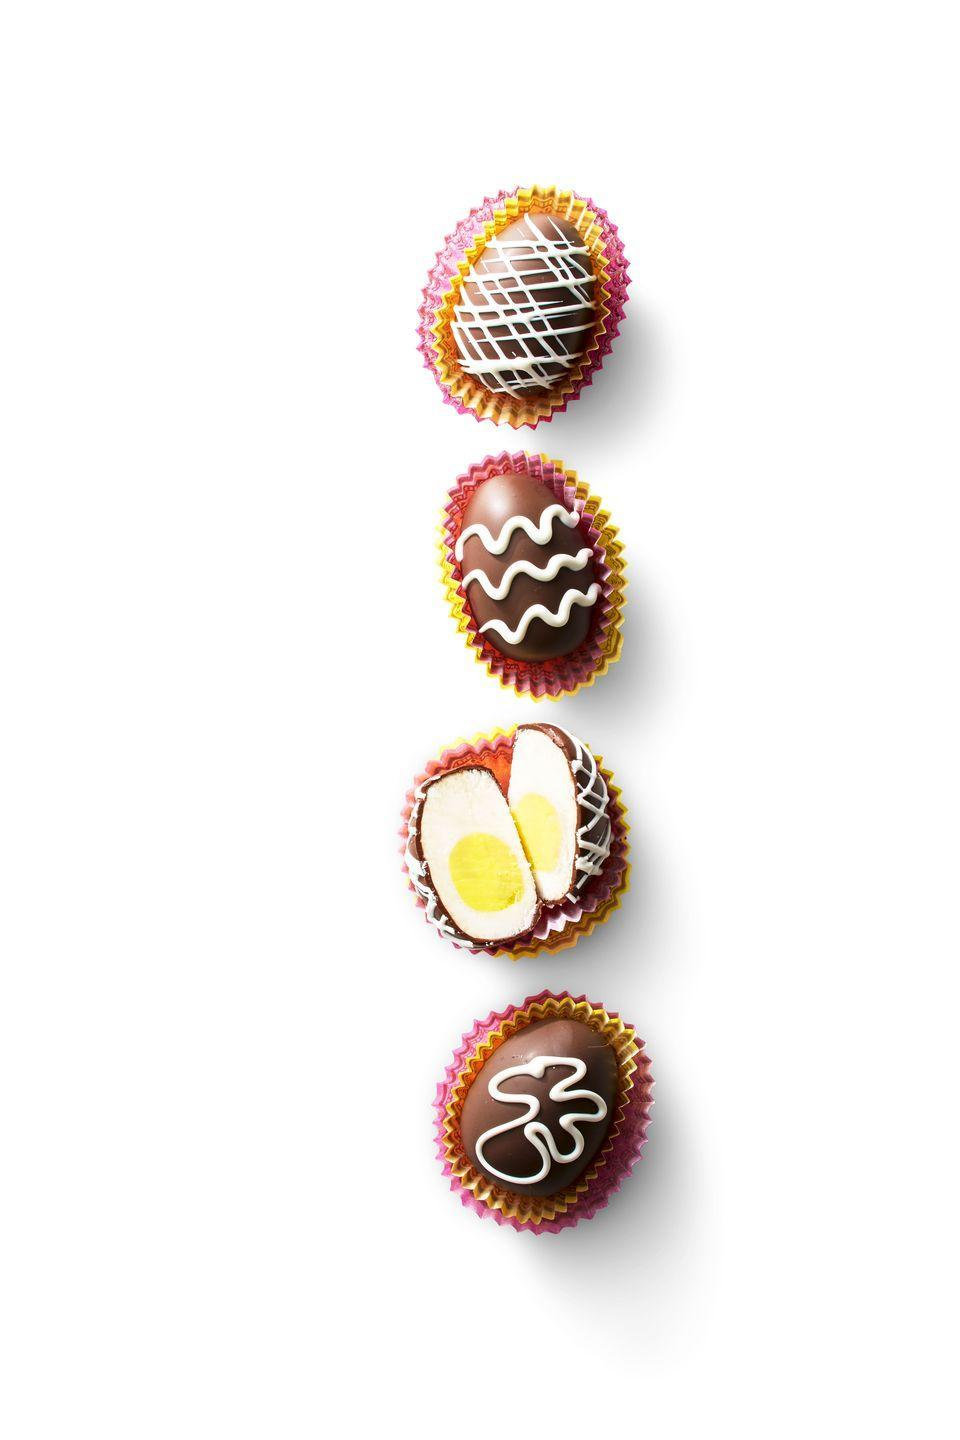 "<p>Have you ever tried making this Easter-favorite treat at home? It's easier than you think!</p><p><em><a href=""https://www.goodhousekeeping.com/food-recipes/a35396870/diy-creme-eggs-recipe/"" rel=""nofollow noopener"" target=""_blank"" data-ylk=""slk:Get the recipe for DIY Creme Eggs »"" class=""link rapid-noclick-resp"">Get the recipe for DIY Creme Eggs »</a></em></p>"